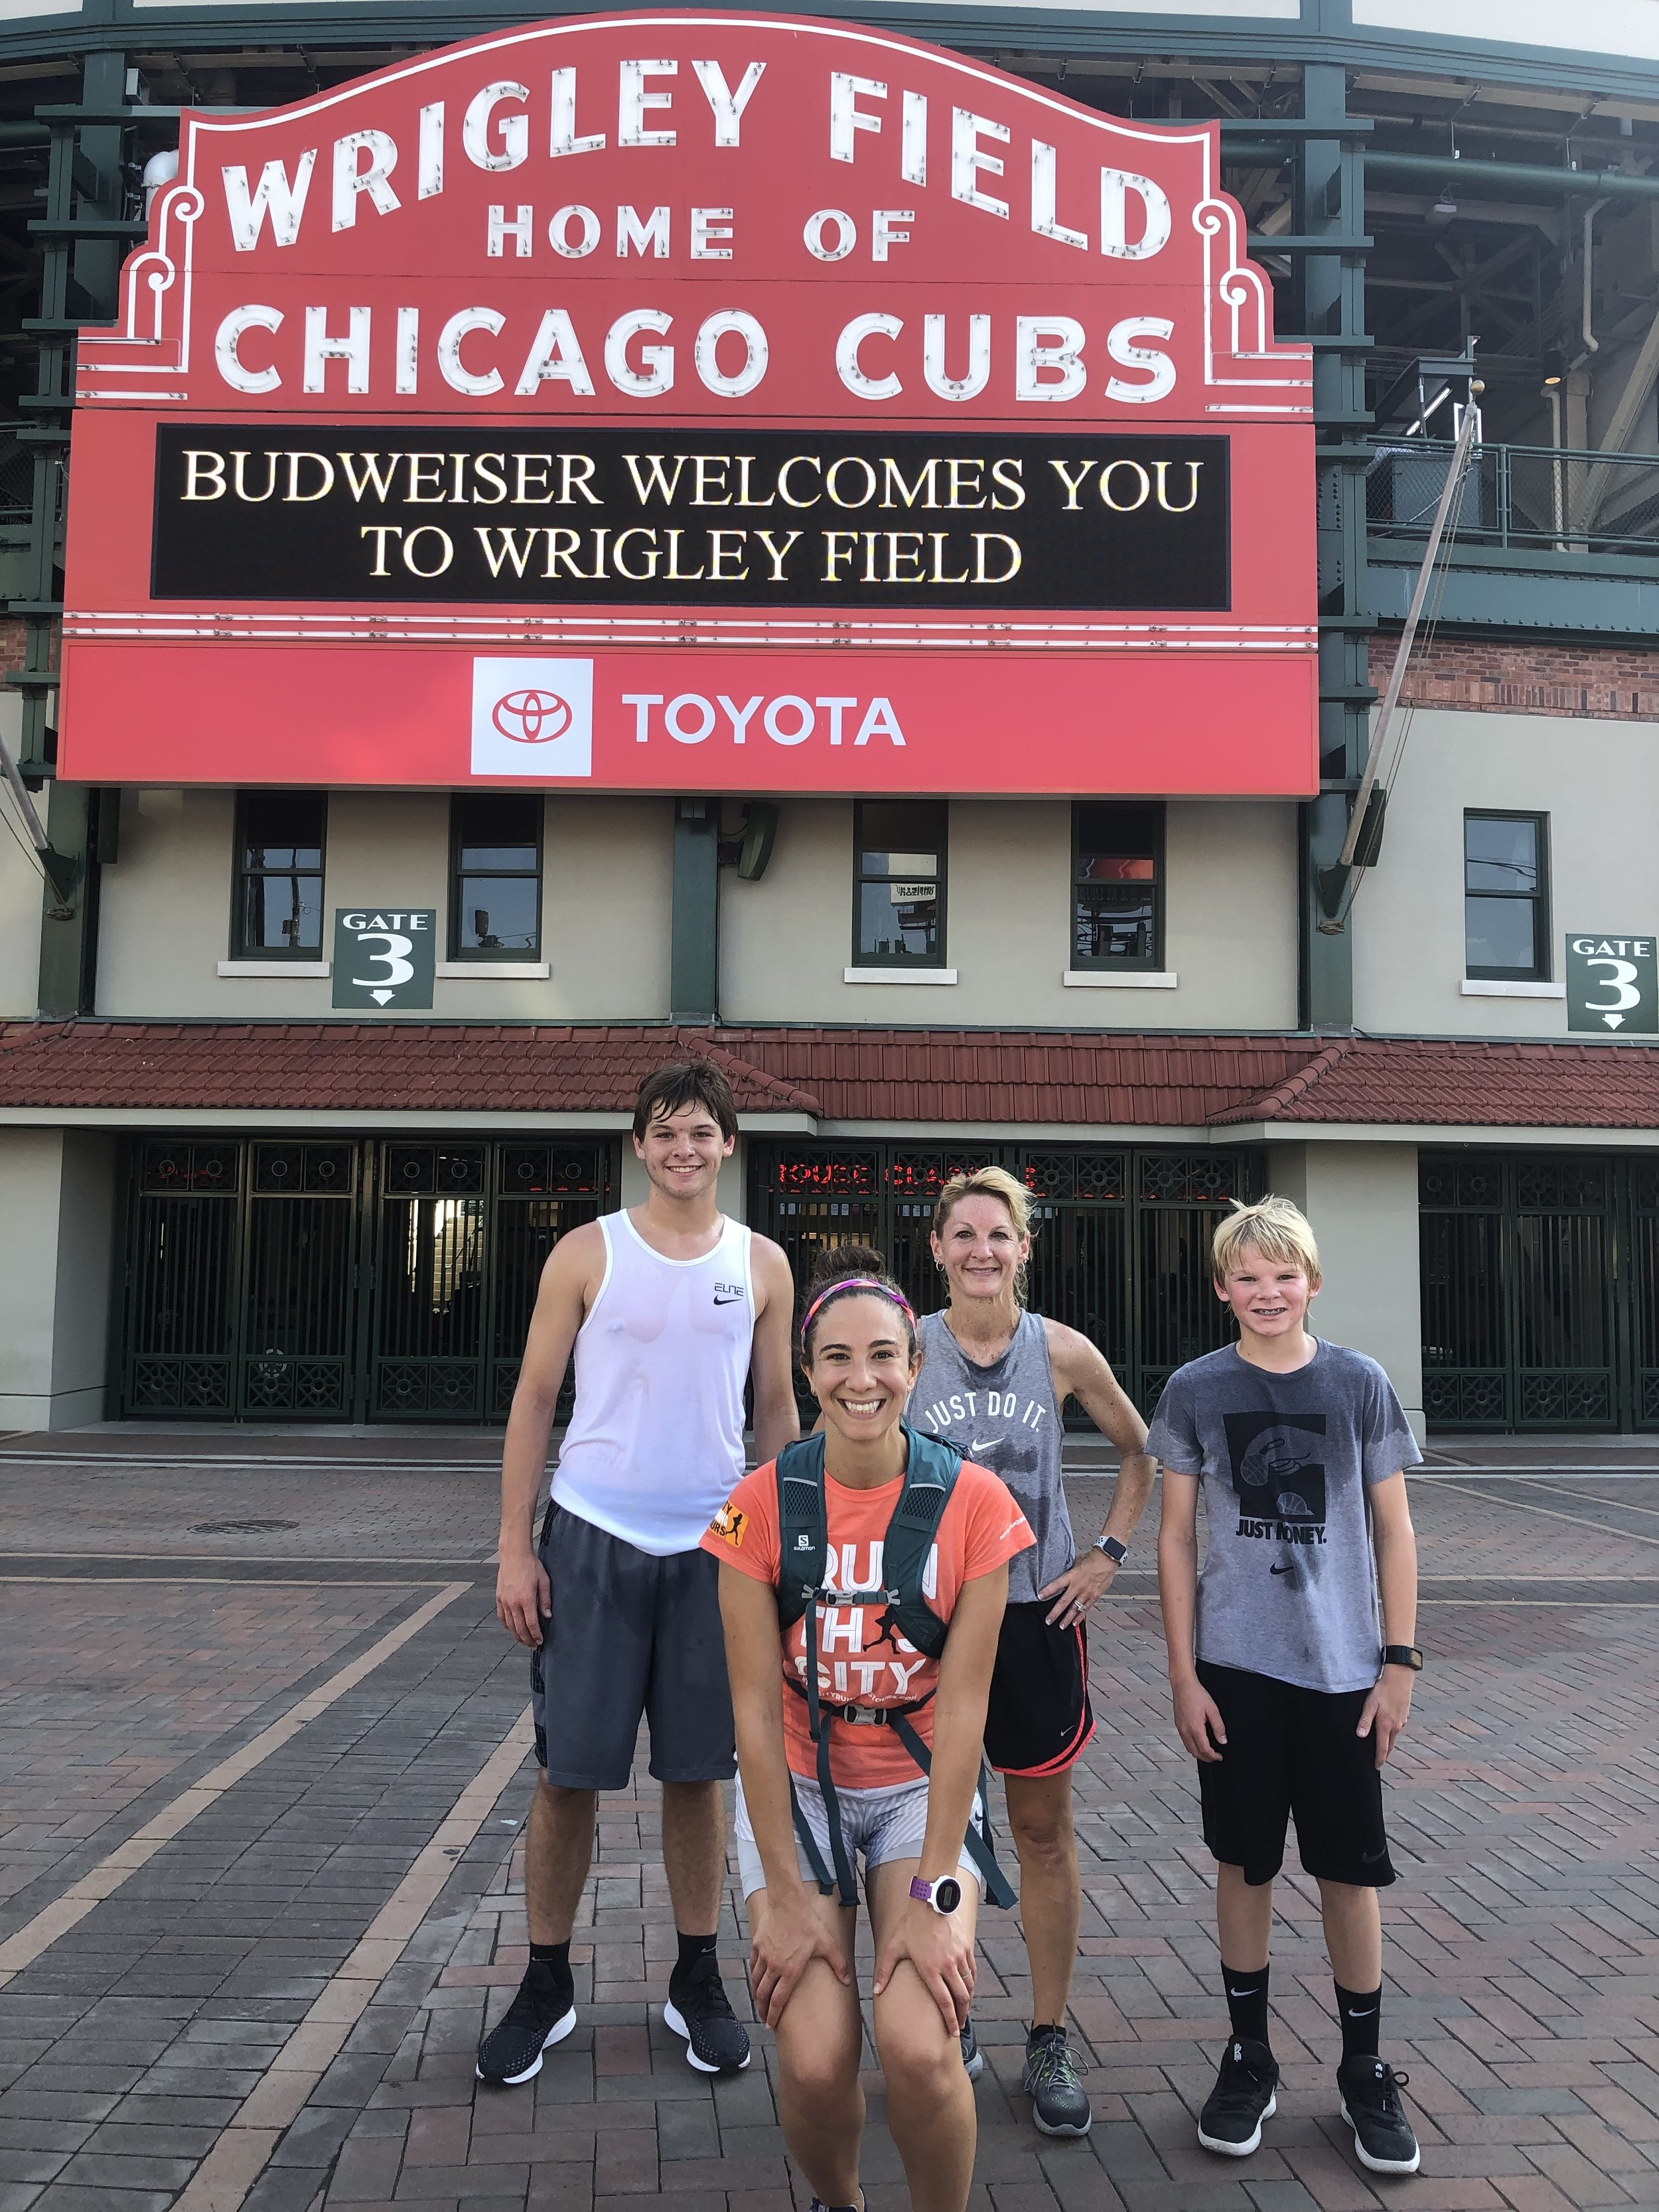 CREATE YOUR OWN CHICAGO RUNNING EXPERIENCE